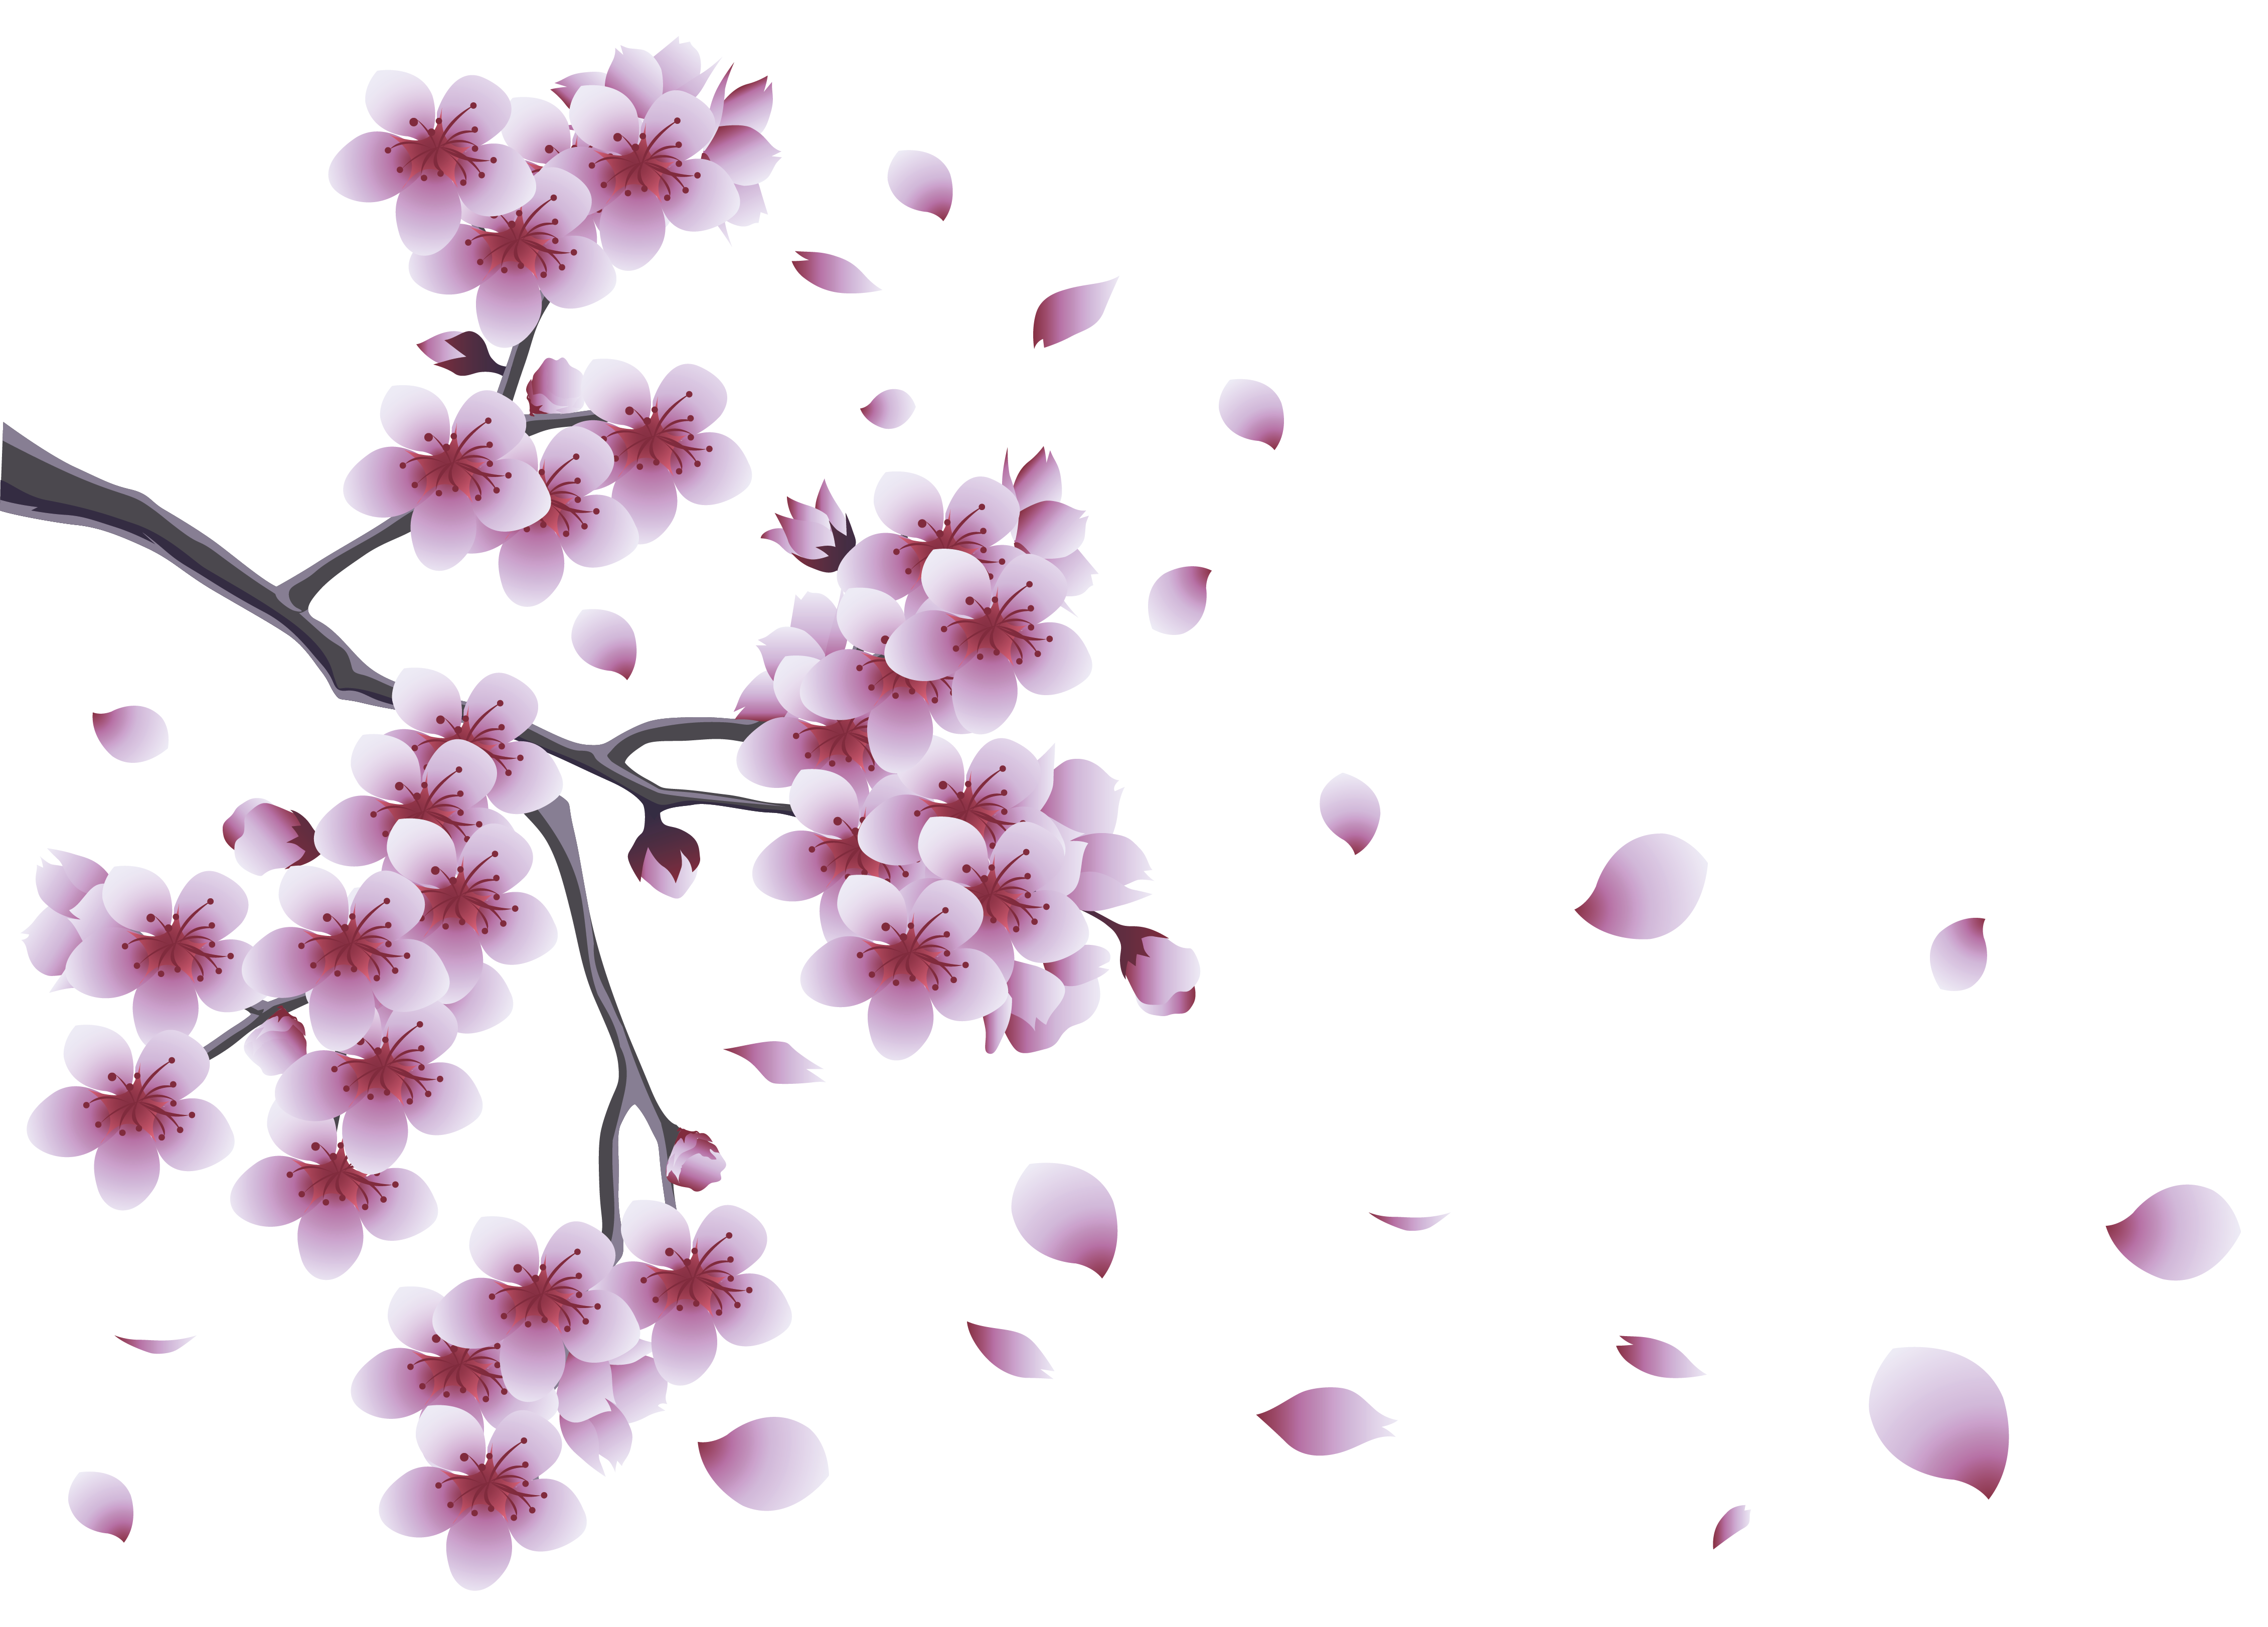 Spring with tree flowers. Flower branch png